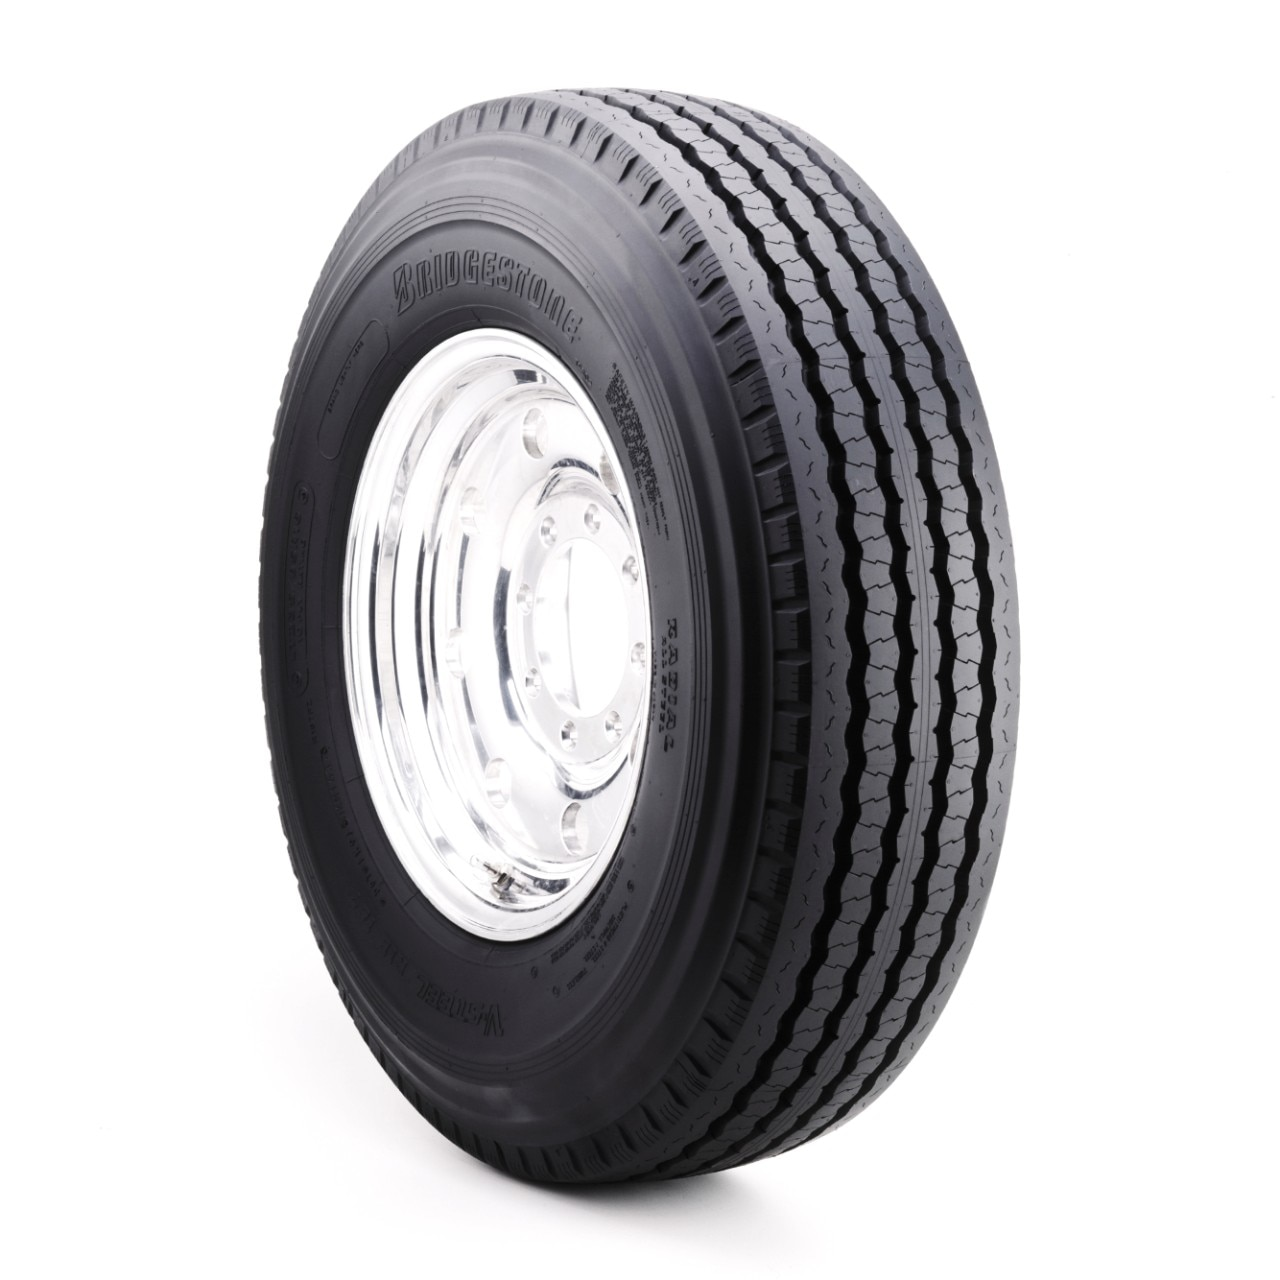 Bridgestone Other R187